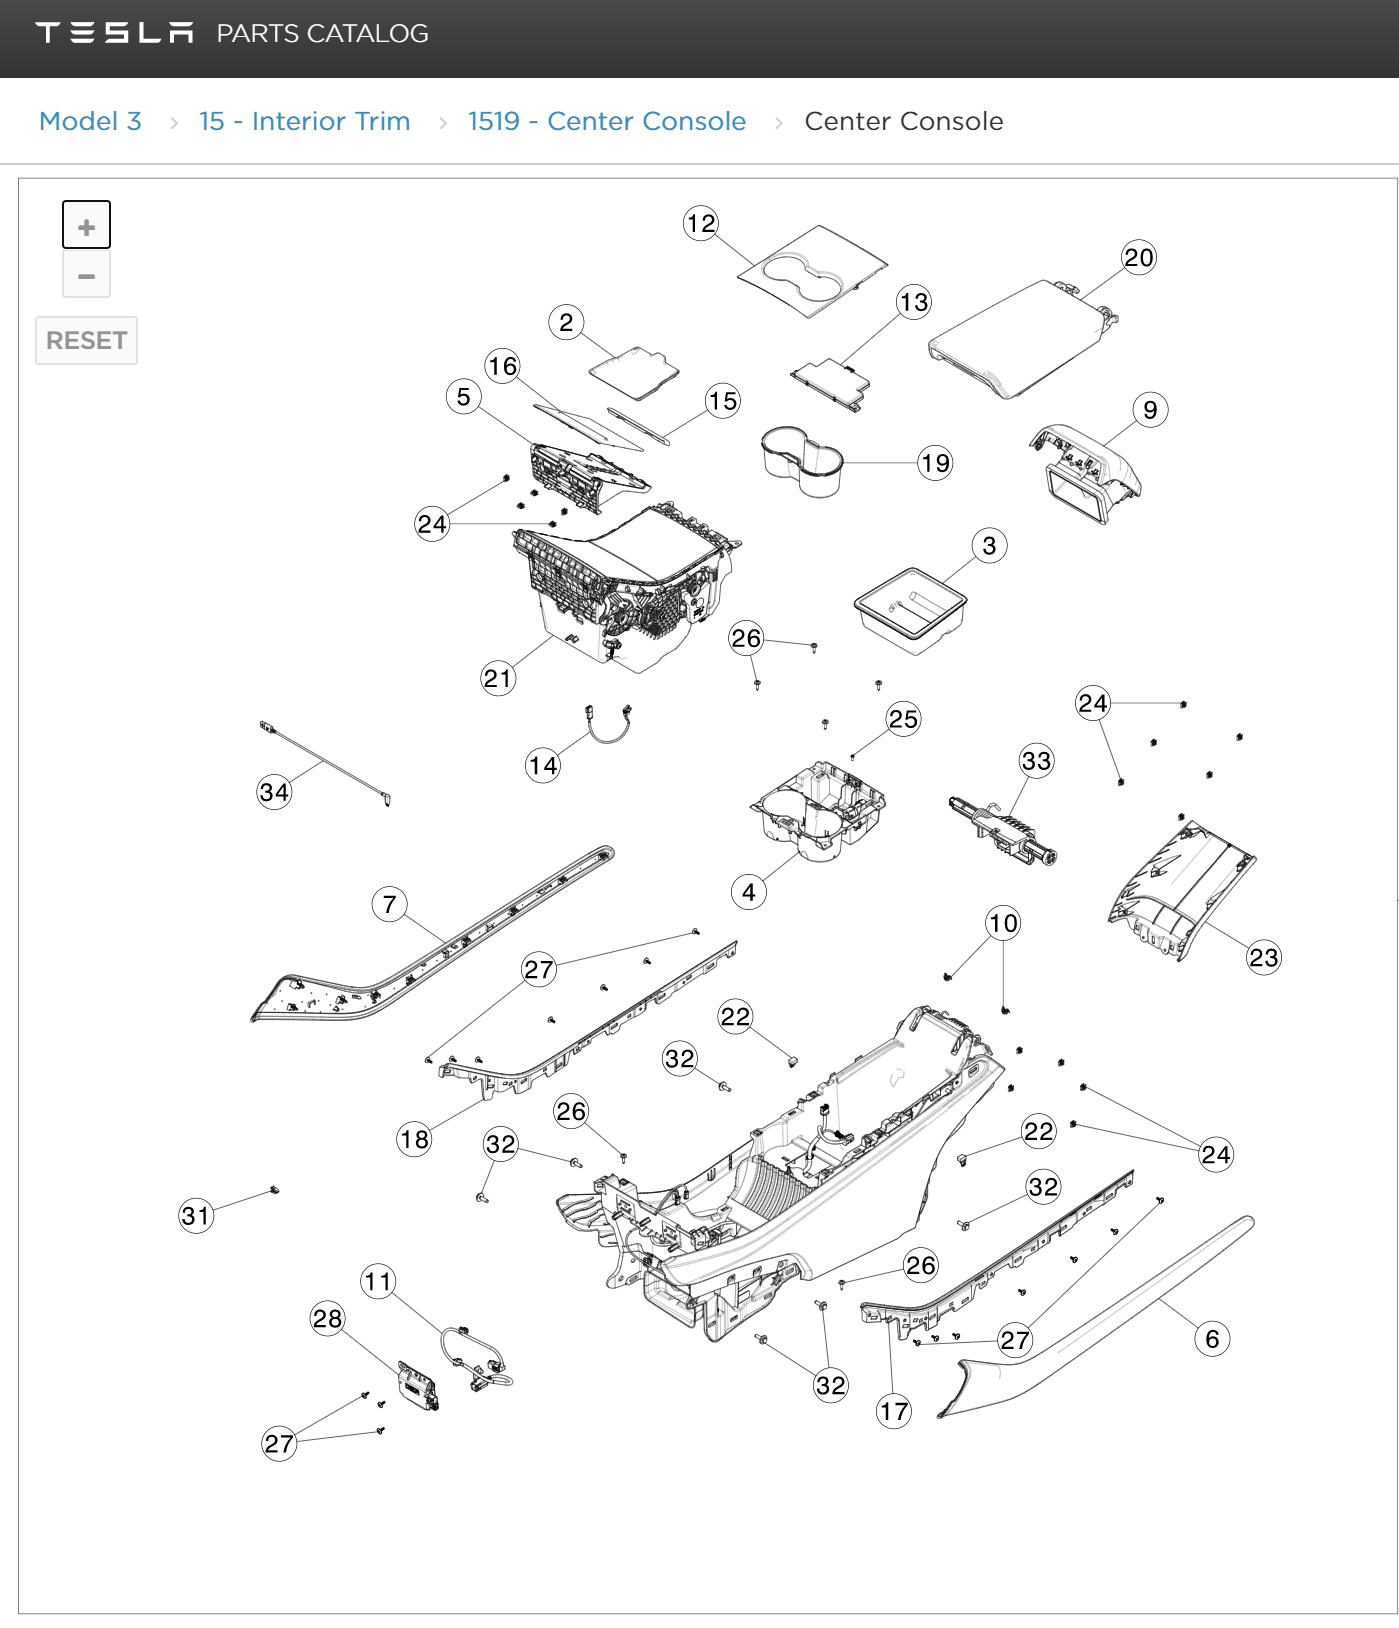 center console model 3.png